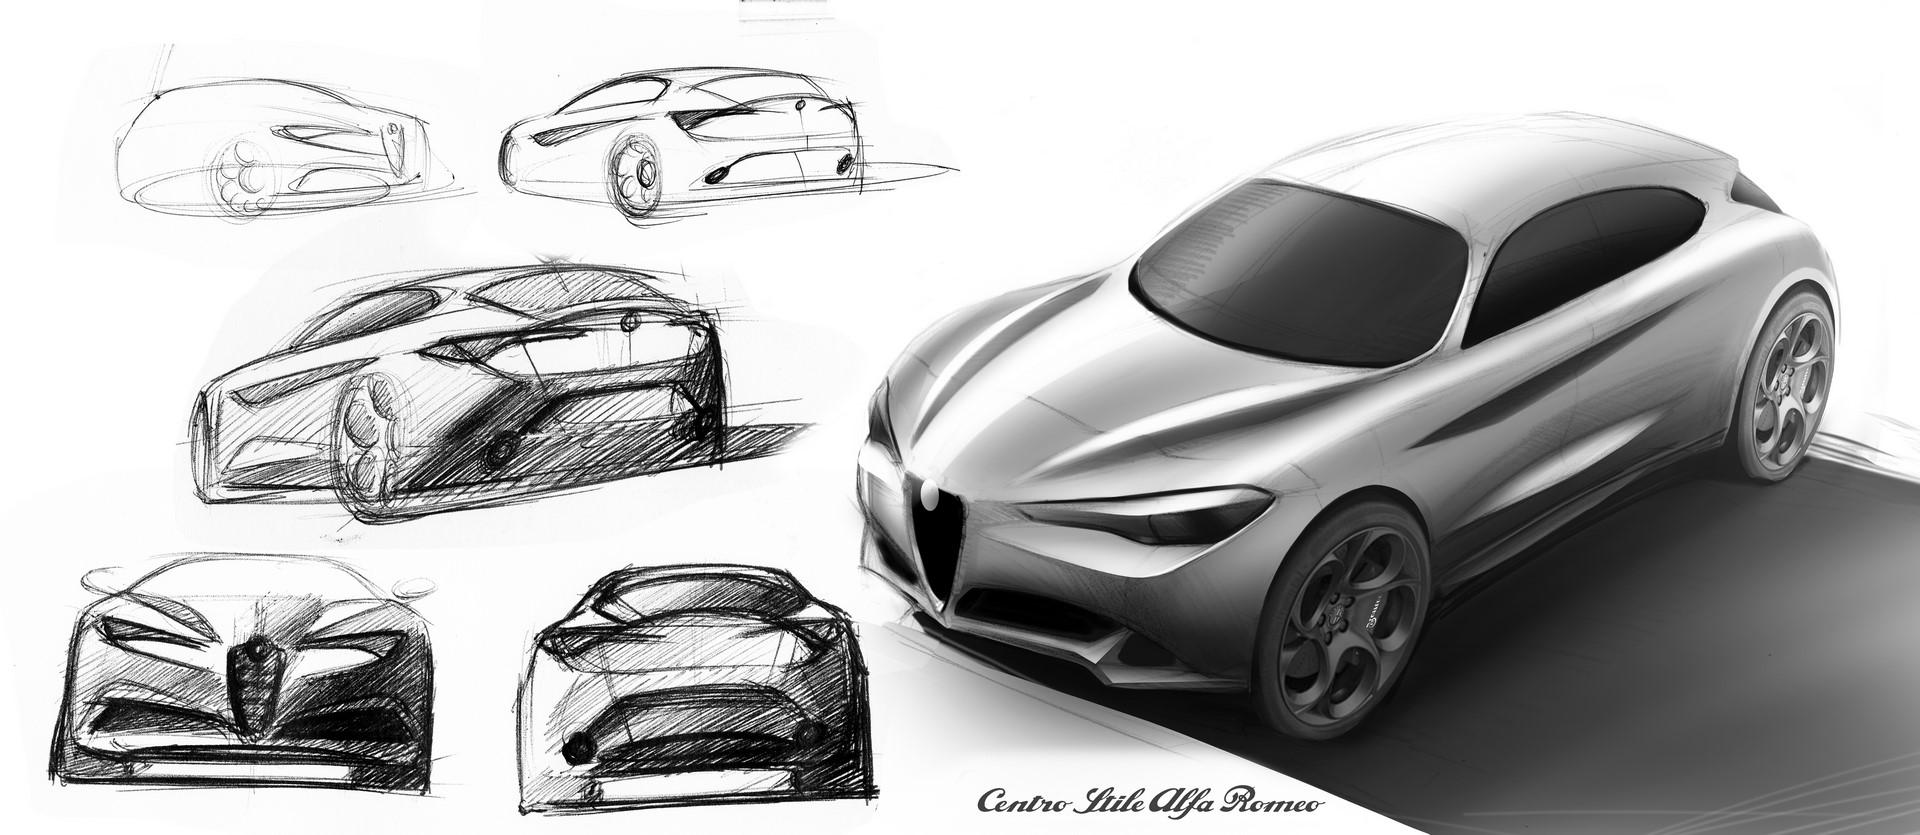 170222_Alfa-Romeo_Stelvio-Design-Sketches_07